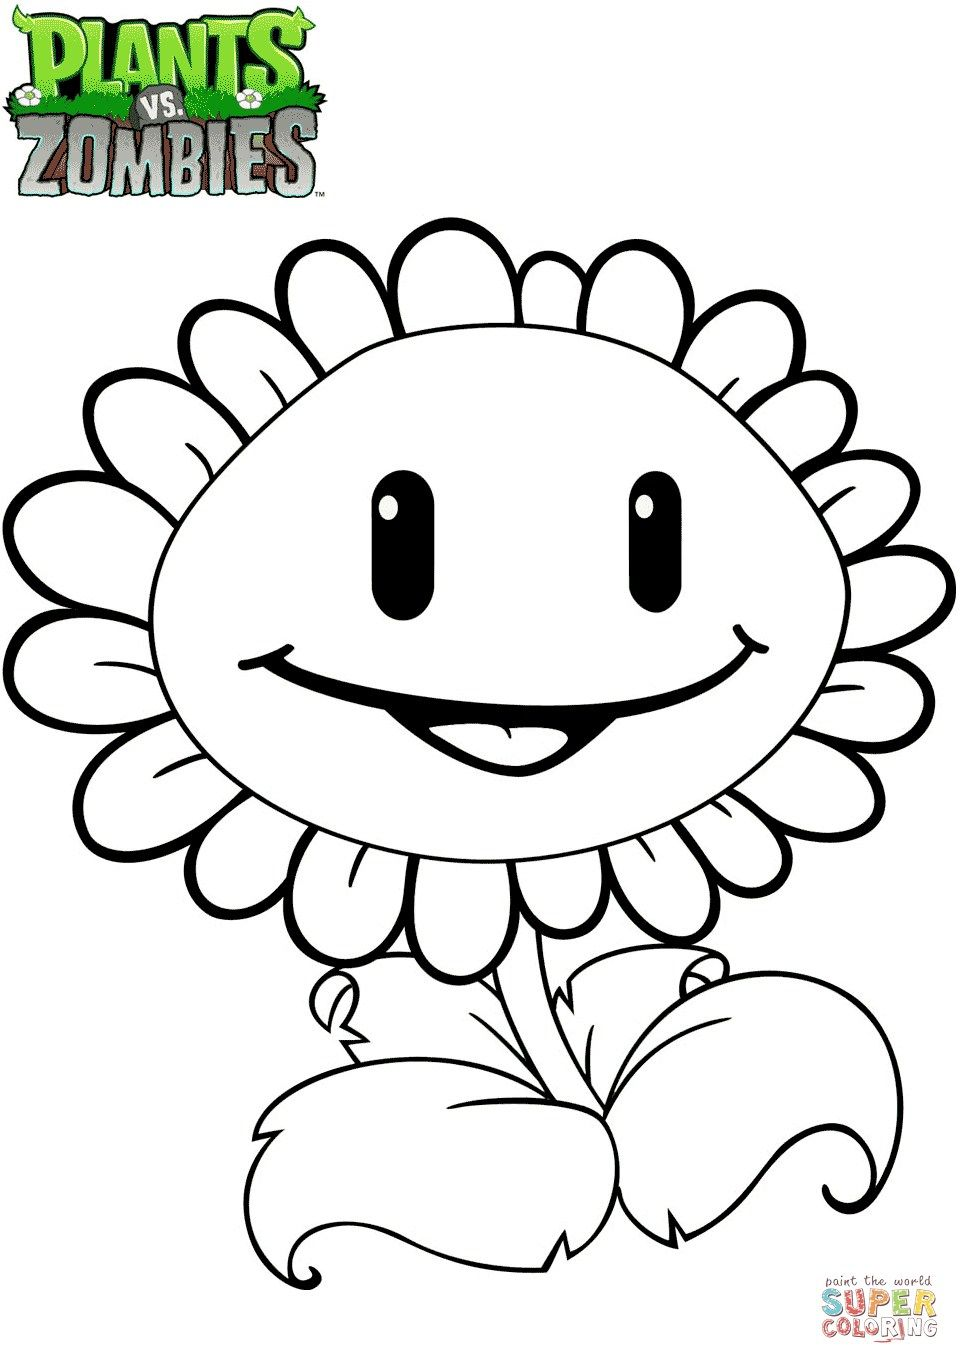 22 Wonderful Picture Of Plants Vs Zombies Coloring Pages Davemelillo Com Sunflower Coloring Pages Plants Vs Zombies Birthday Party Sunflower Colors